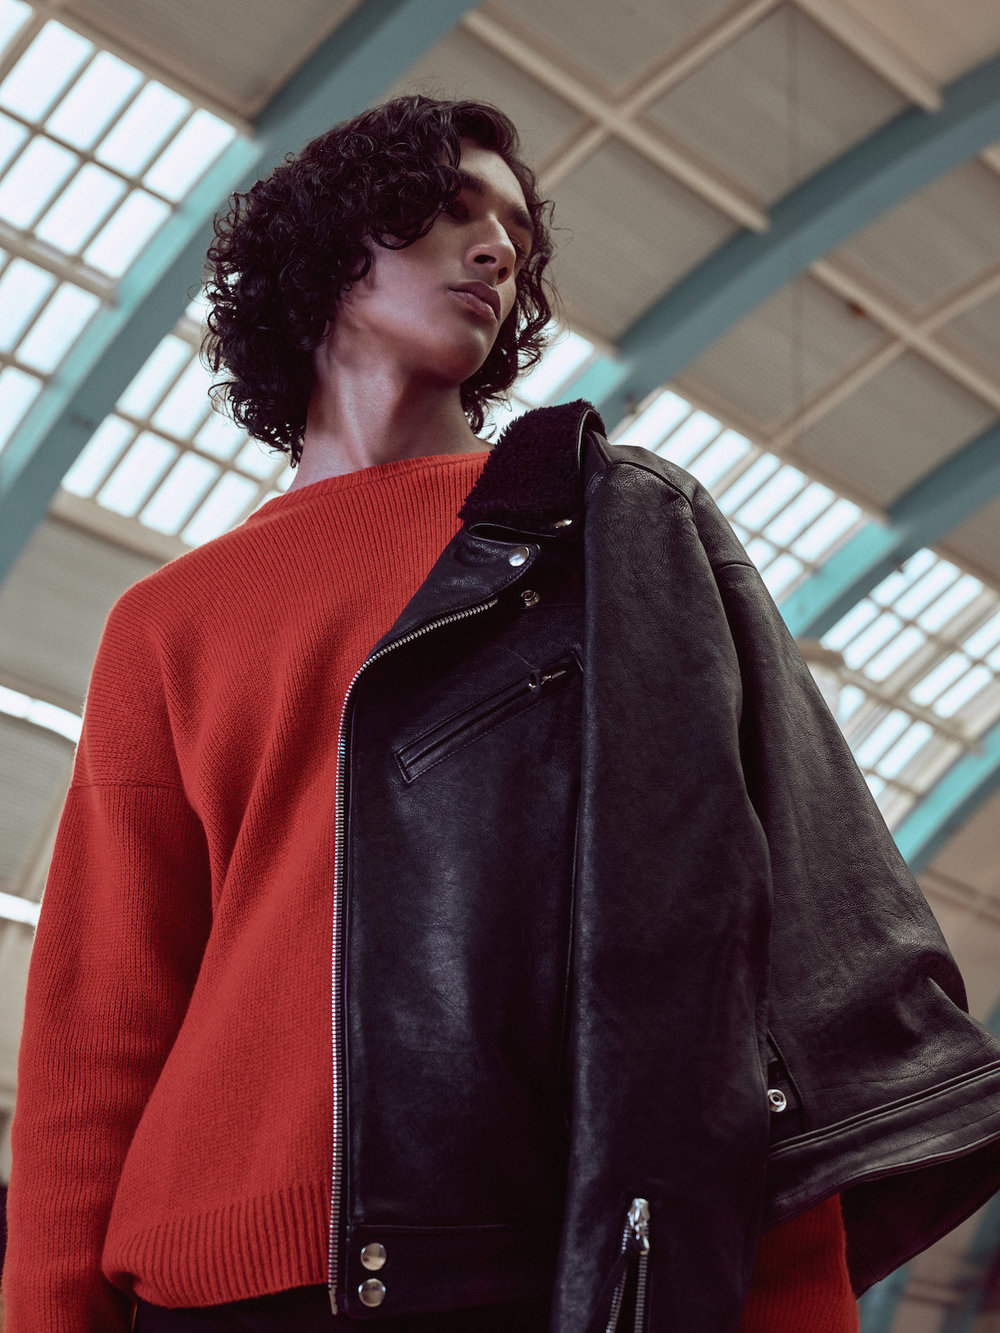 JECO_FW17_DELIVERY I_LOOK BOOK_MAUS2793.jpeg